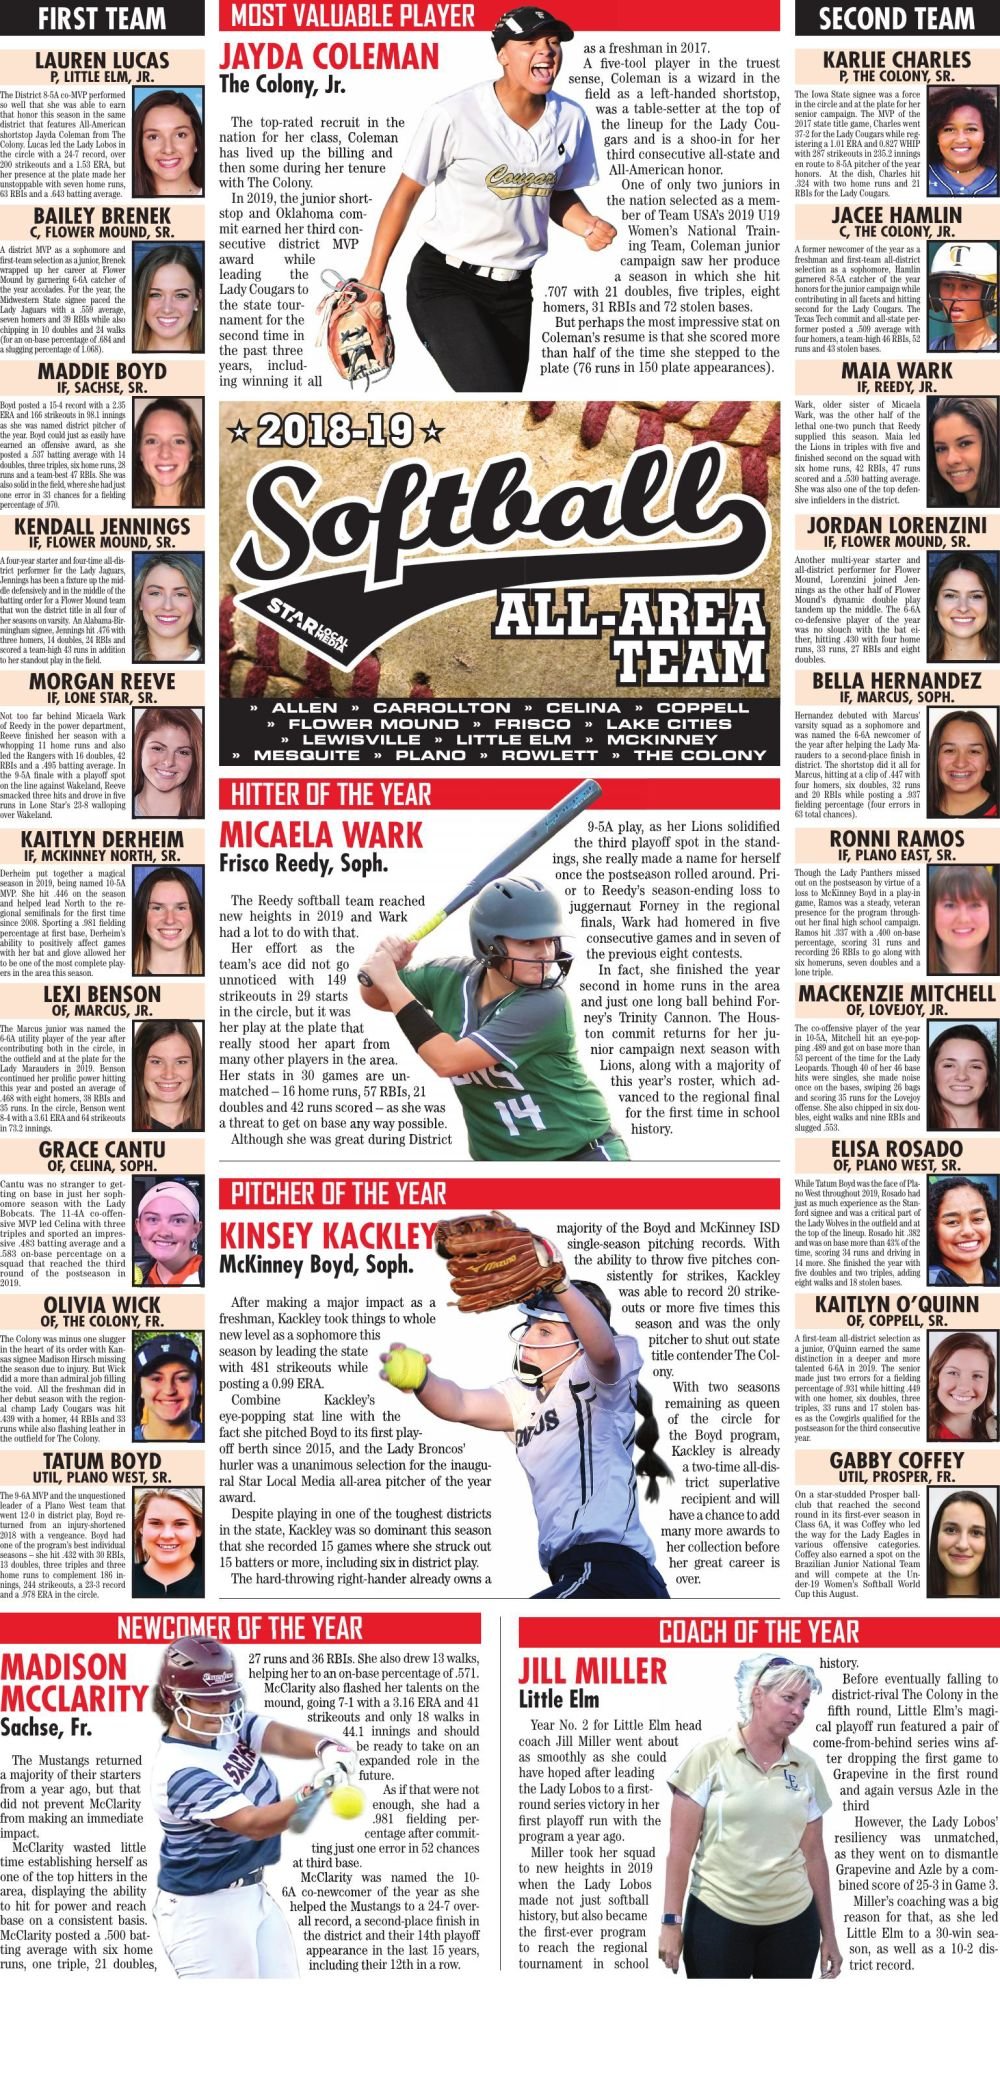 2019 Star Local Media All-Area Softball Team